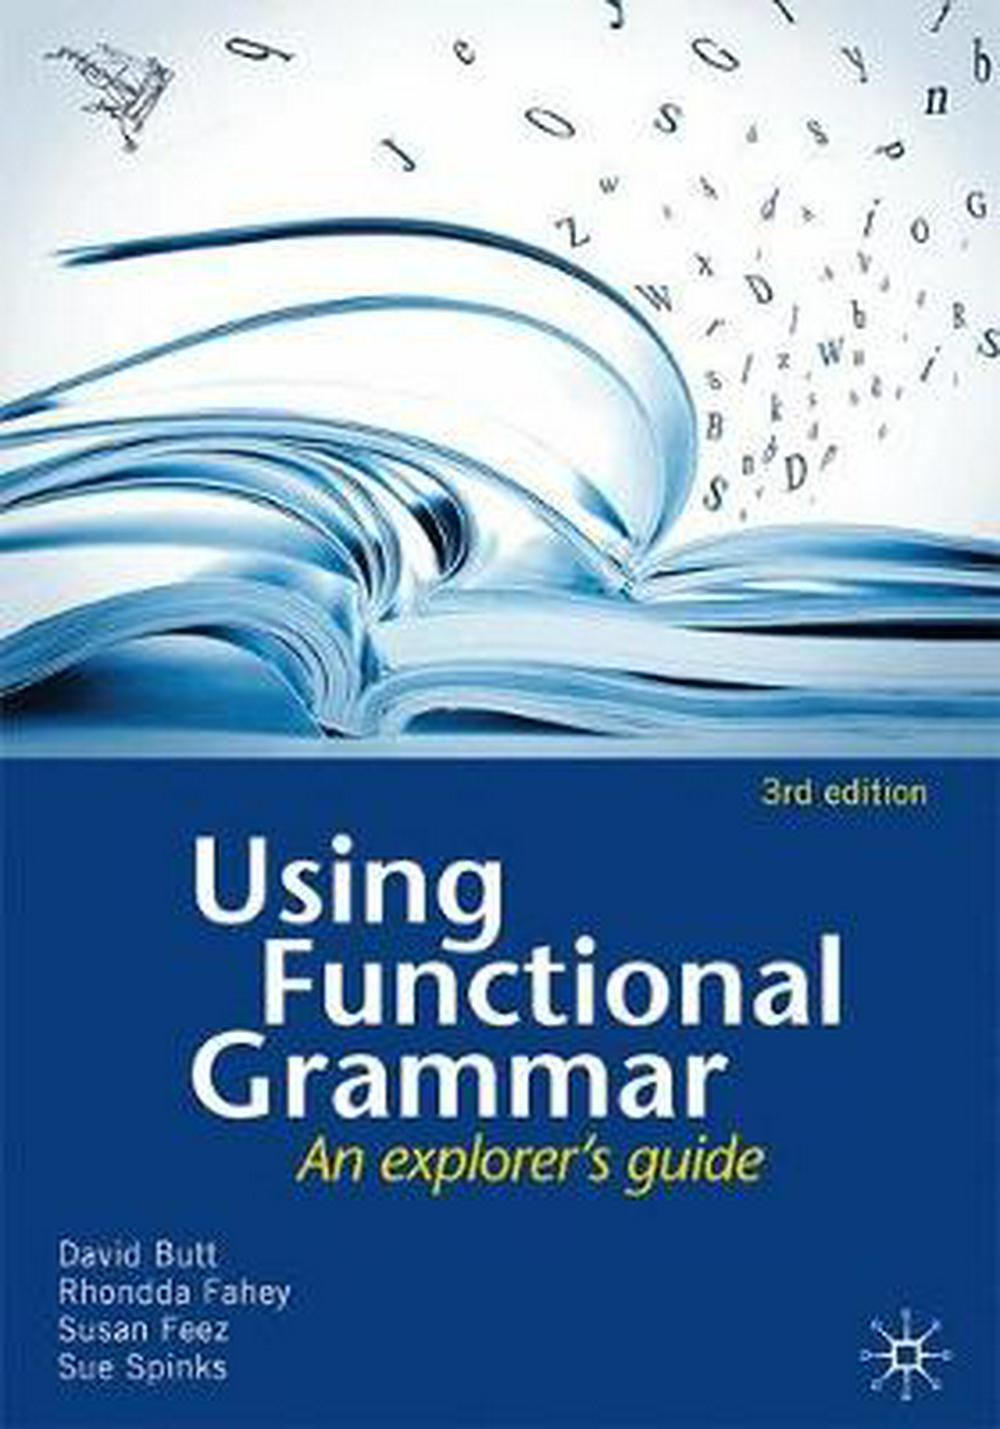 Using Functional Grammar